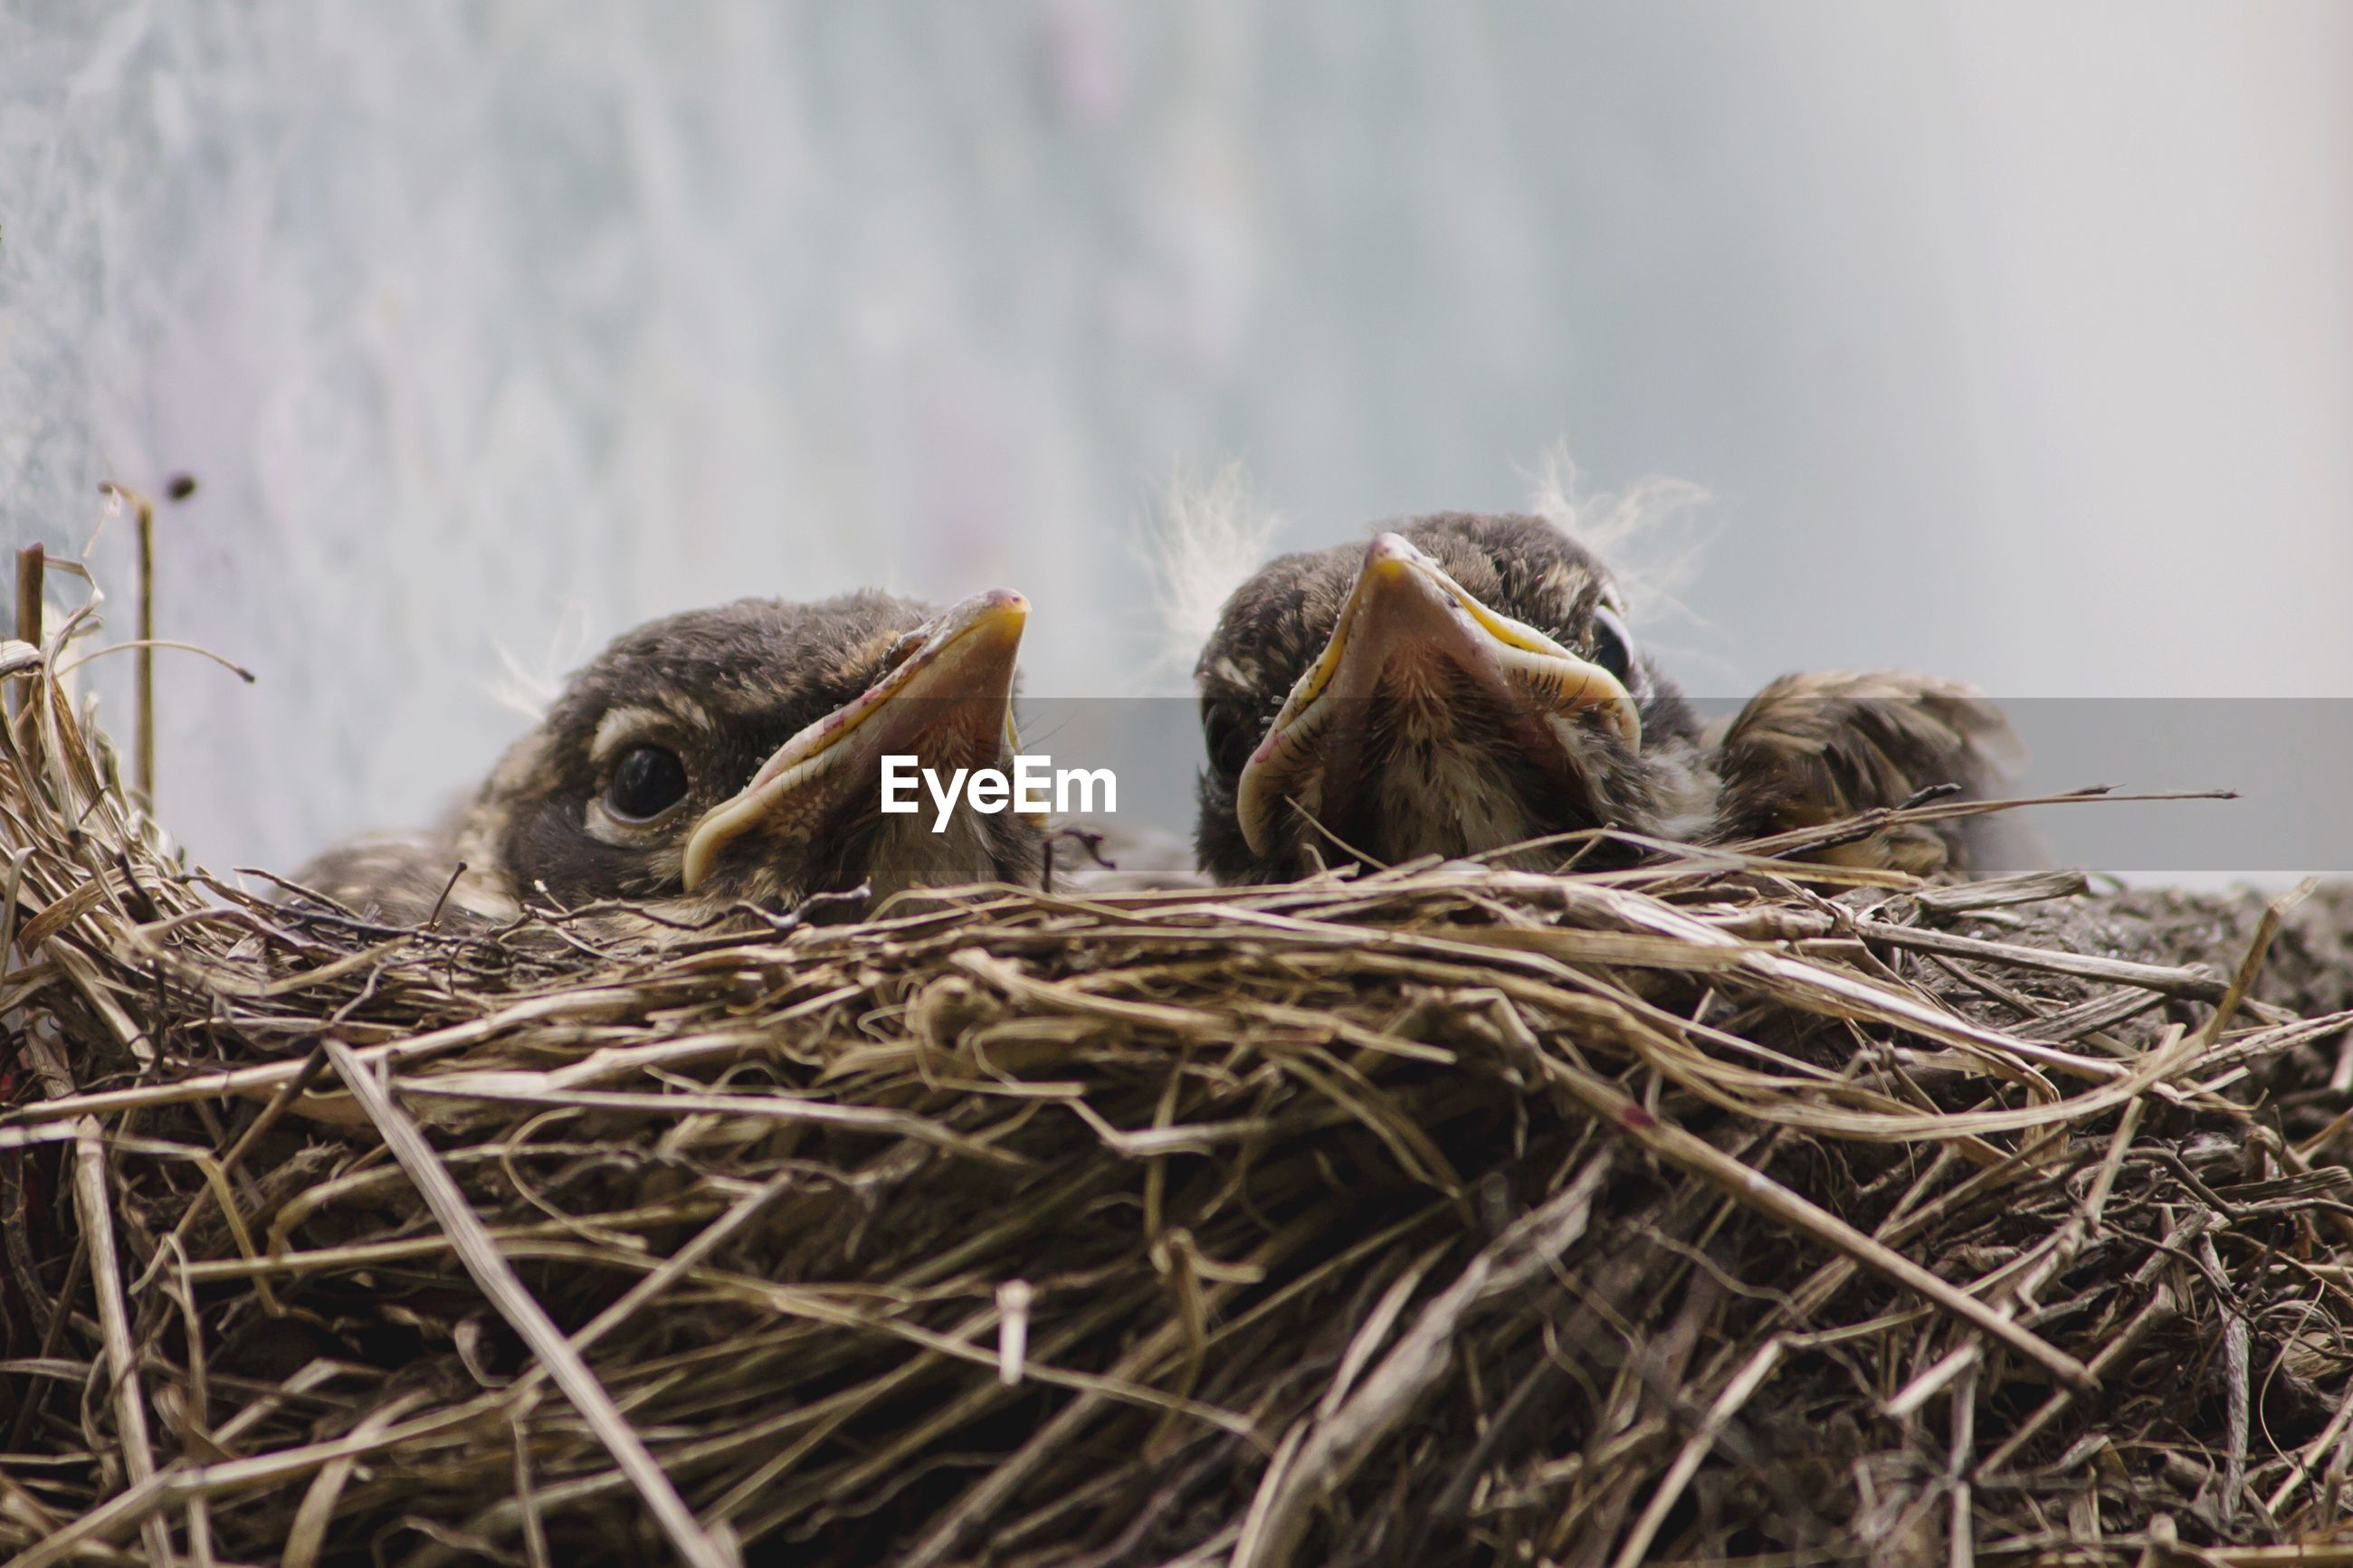 Close-up of young birds in nest